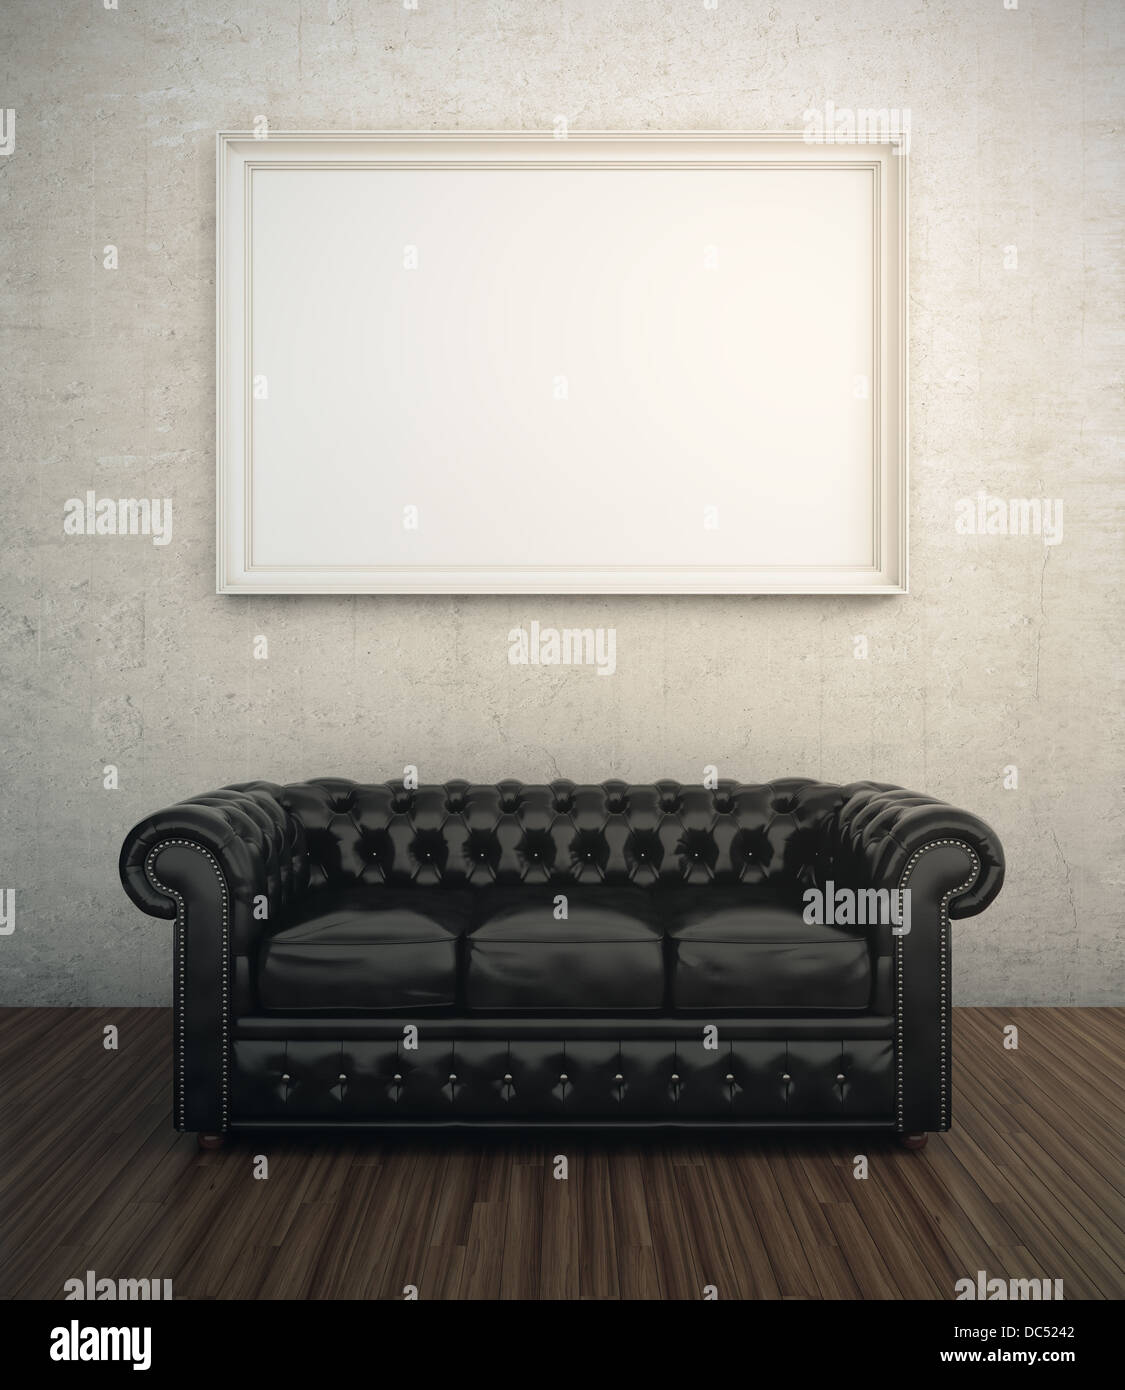 Strange Black Leather Sofa Next To White Wall With Blank Frame Stock Pdpeps Interior Chair Design Pdpepsorg